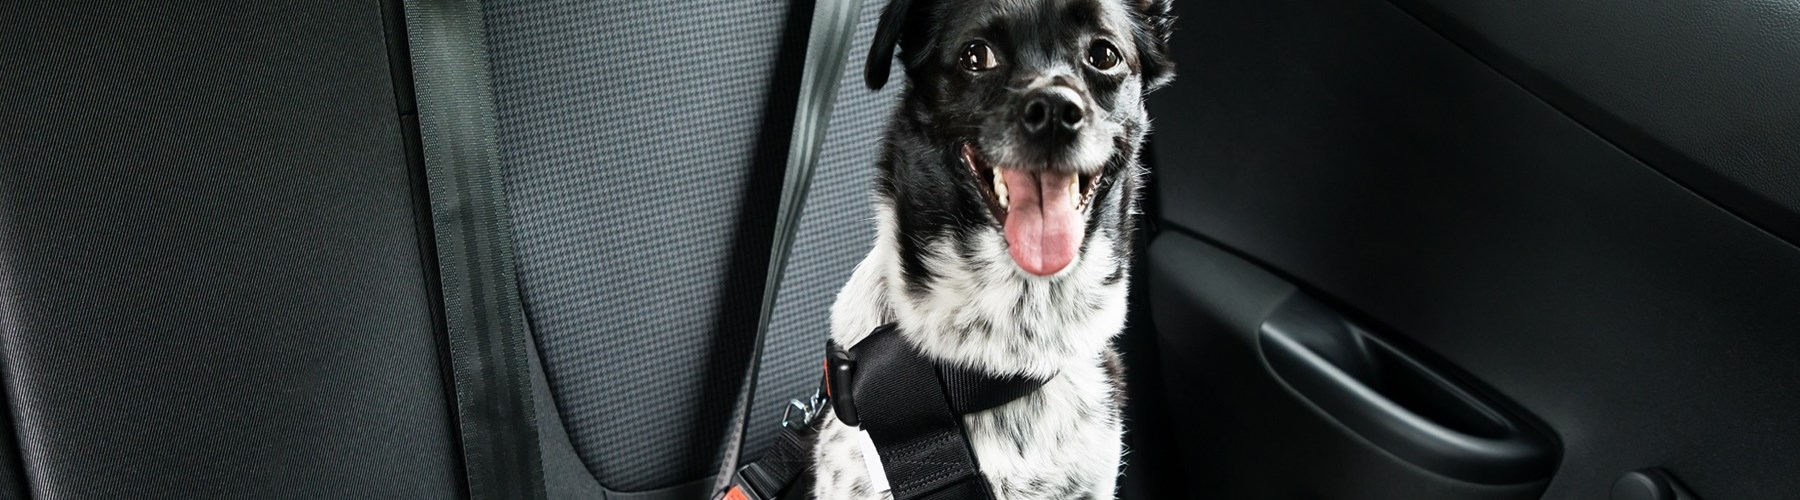 Dog wearing a seat belt in a car